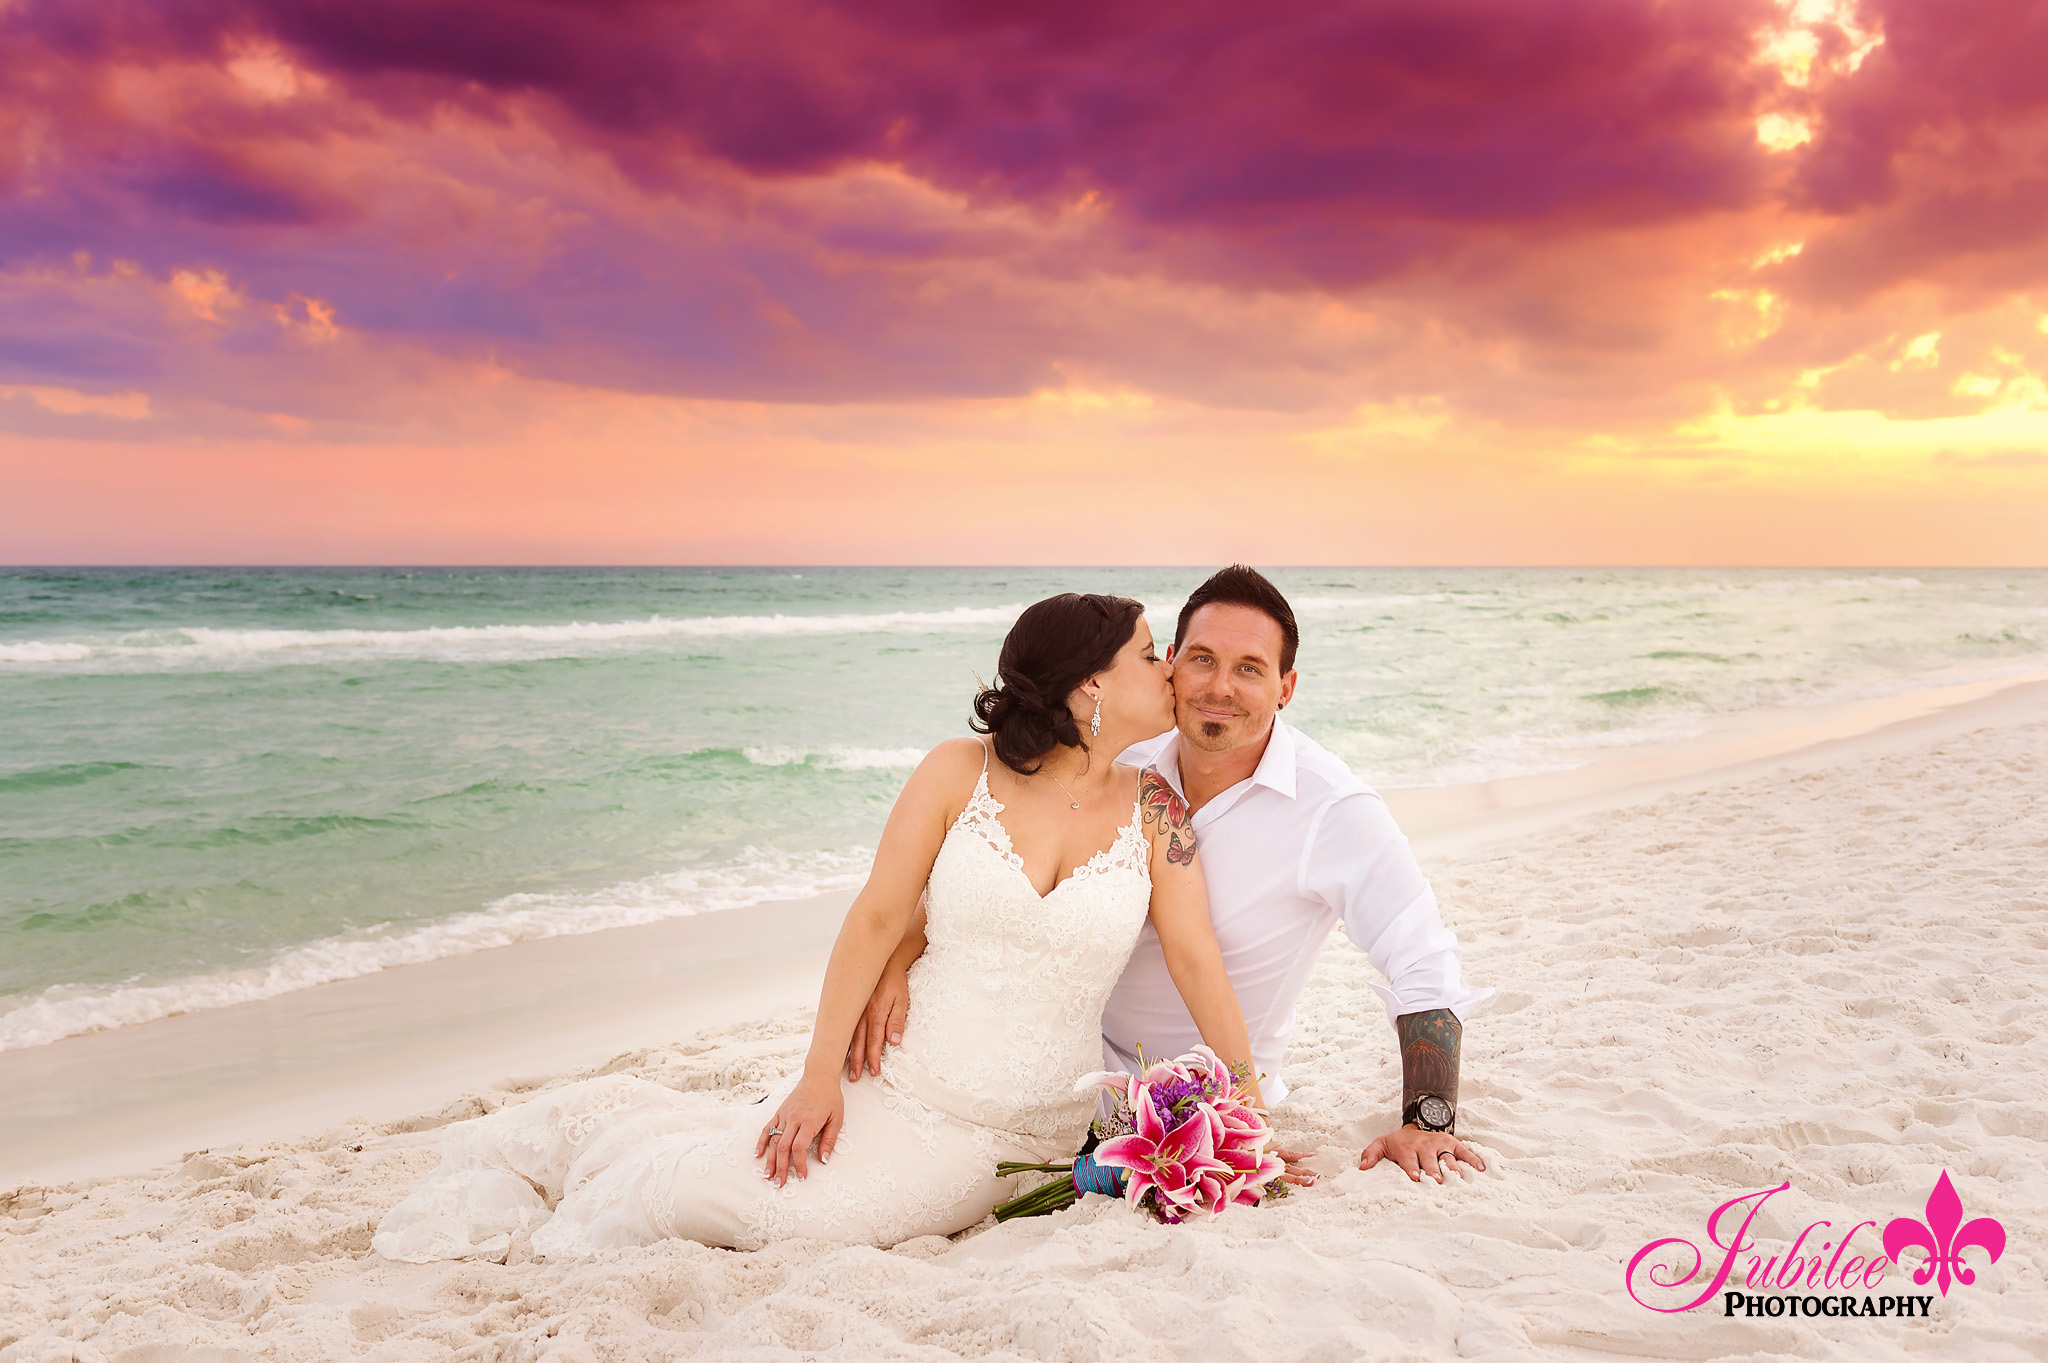 30A_Wedding_Photographer_7180